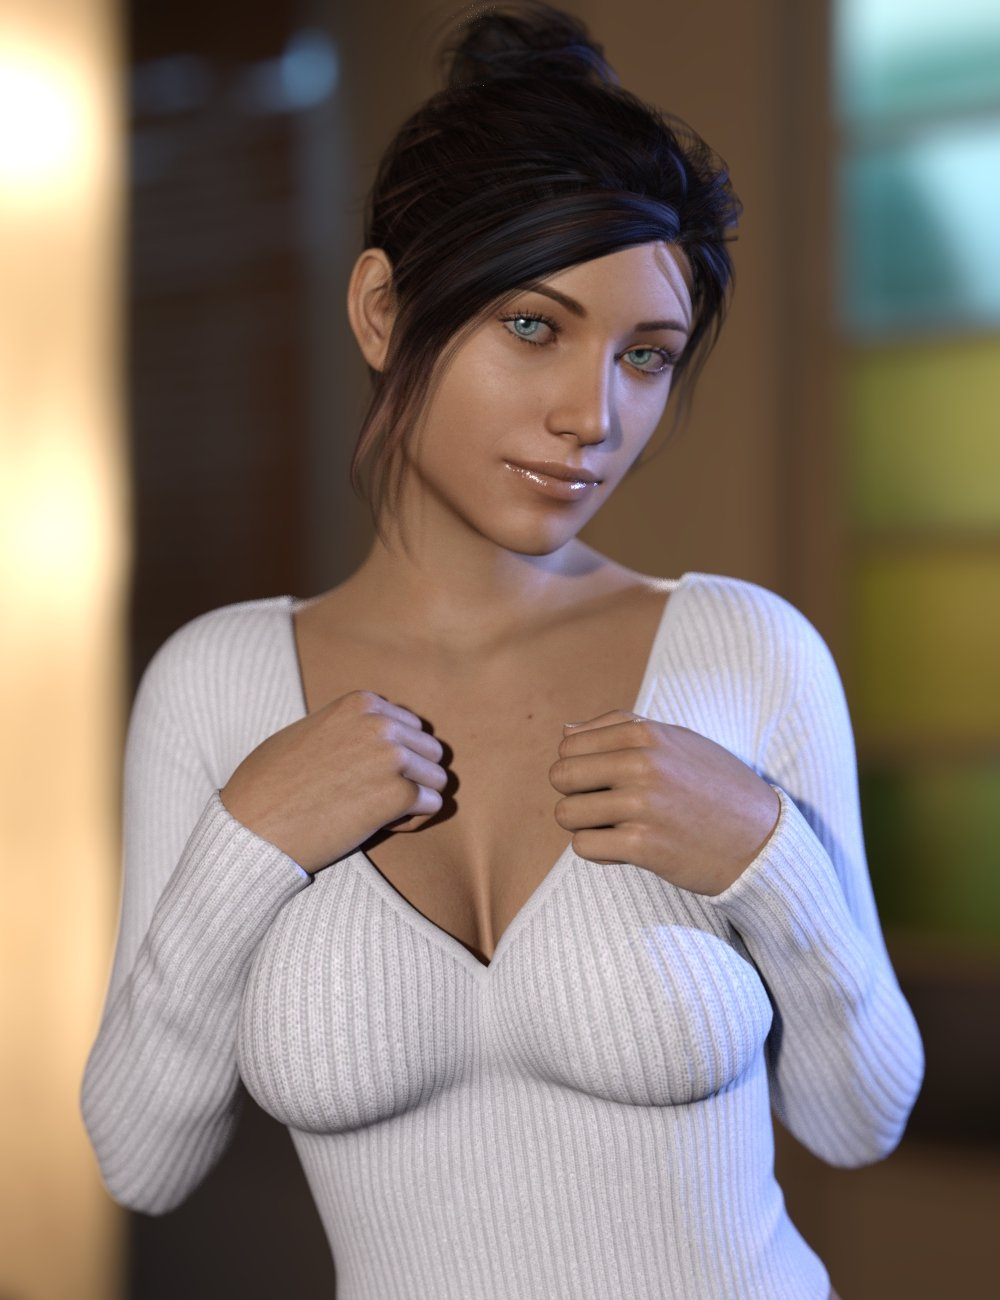 dForce Soft Breast for Genesis 8 Females by: iWave, 3D Models by Daz 3D